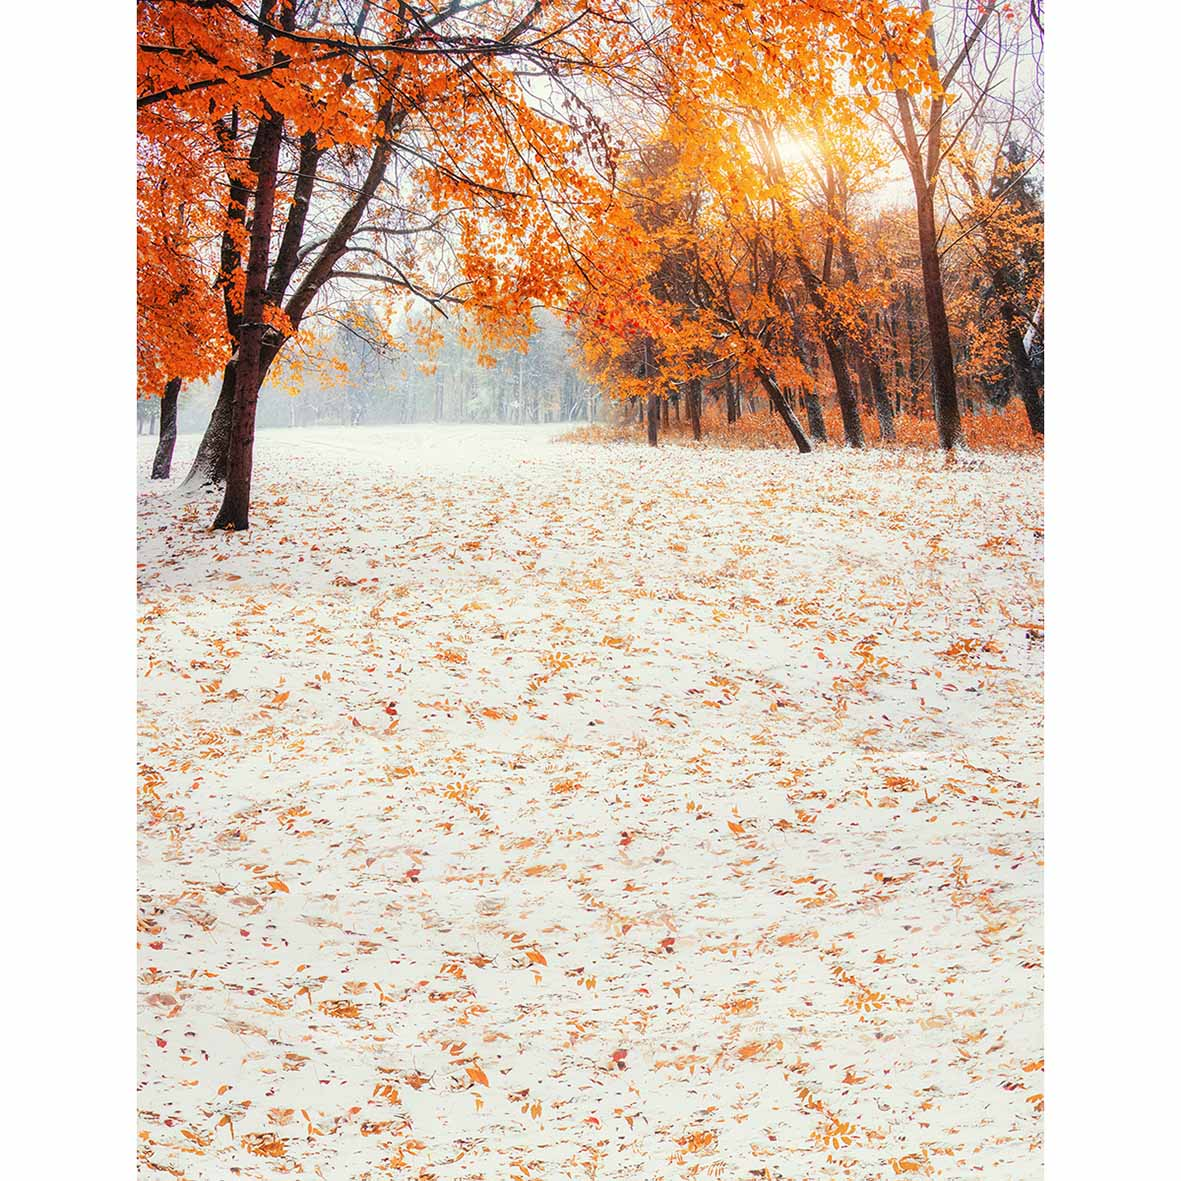 Allenjoy photographic background Beautiful autumn leaves fairyland orange dreamy new backdrop photocall photo printed customize in Background from Consumer Electronics